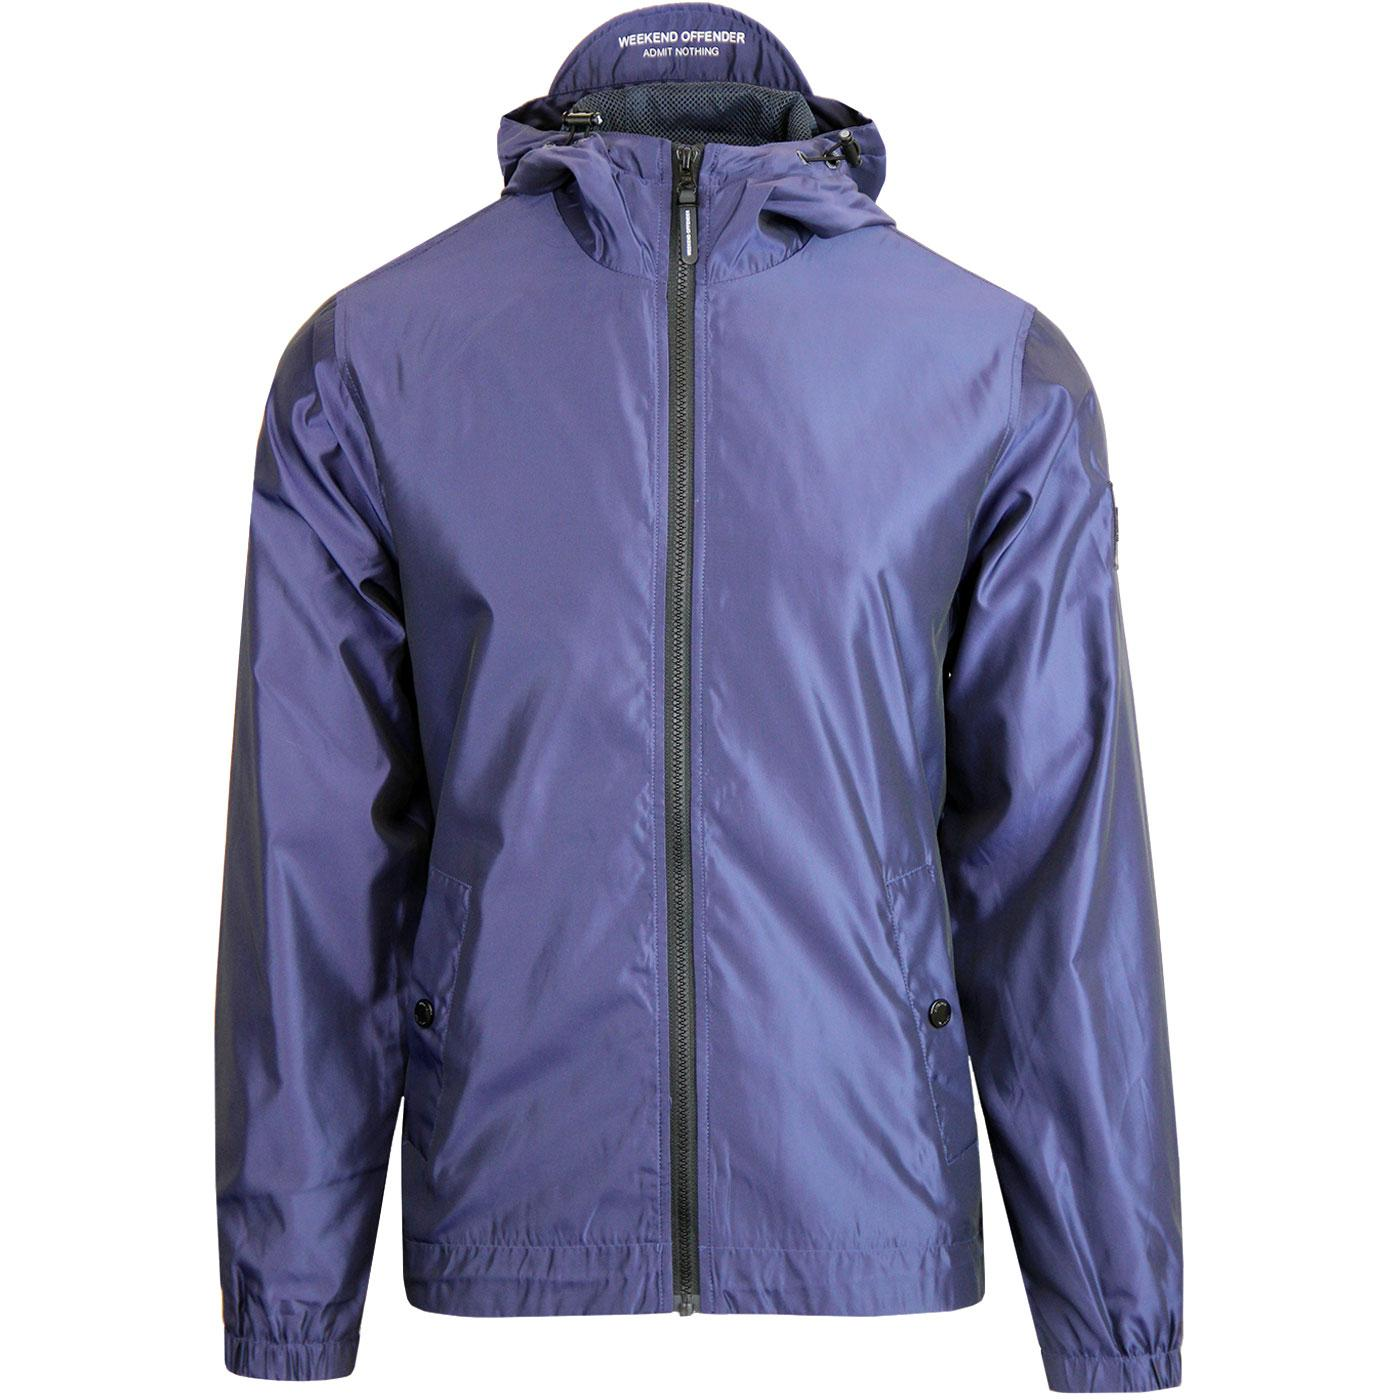 Armstrong WEEKEND OFFENDER Casuals Hooded Jacket